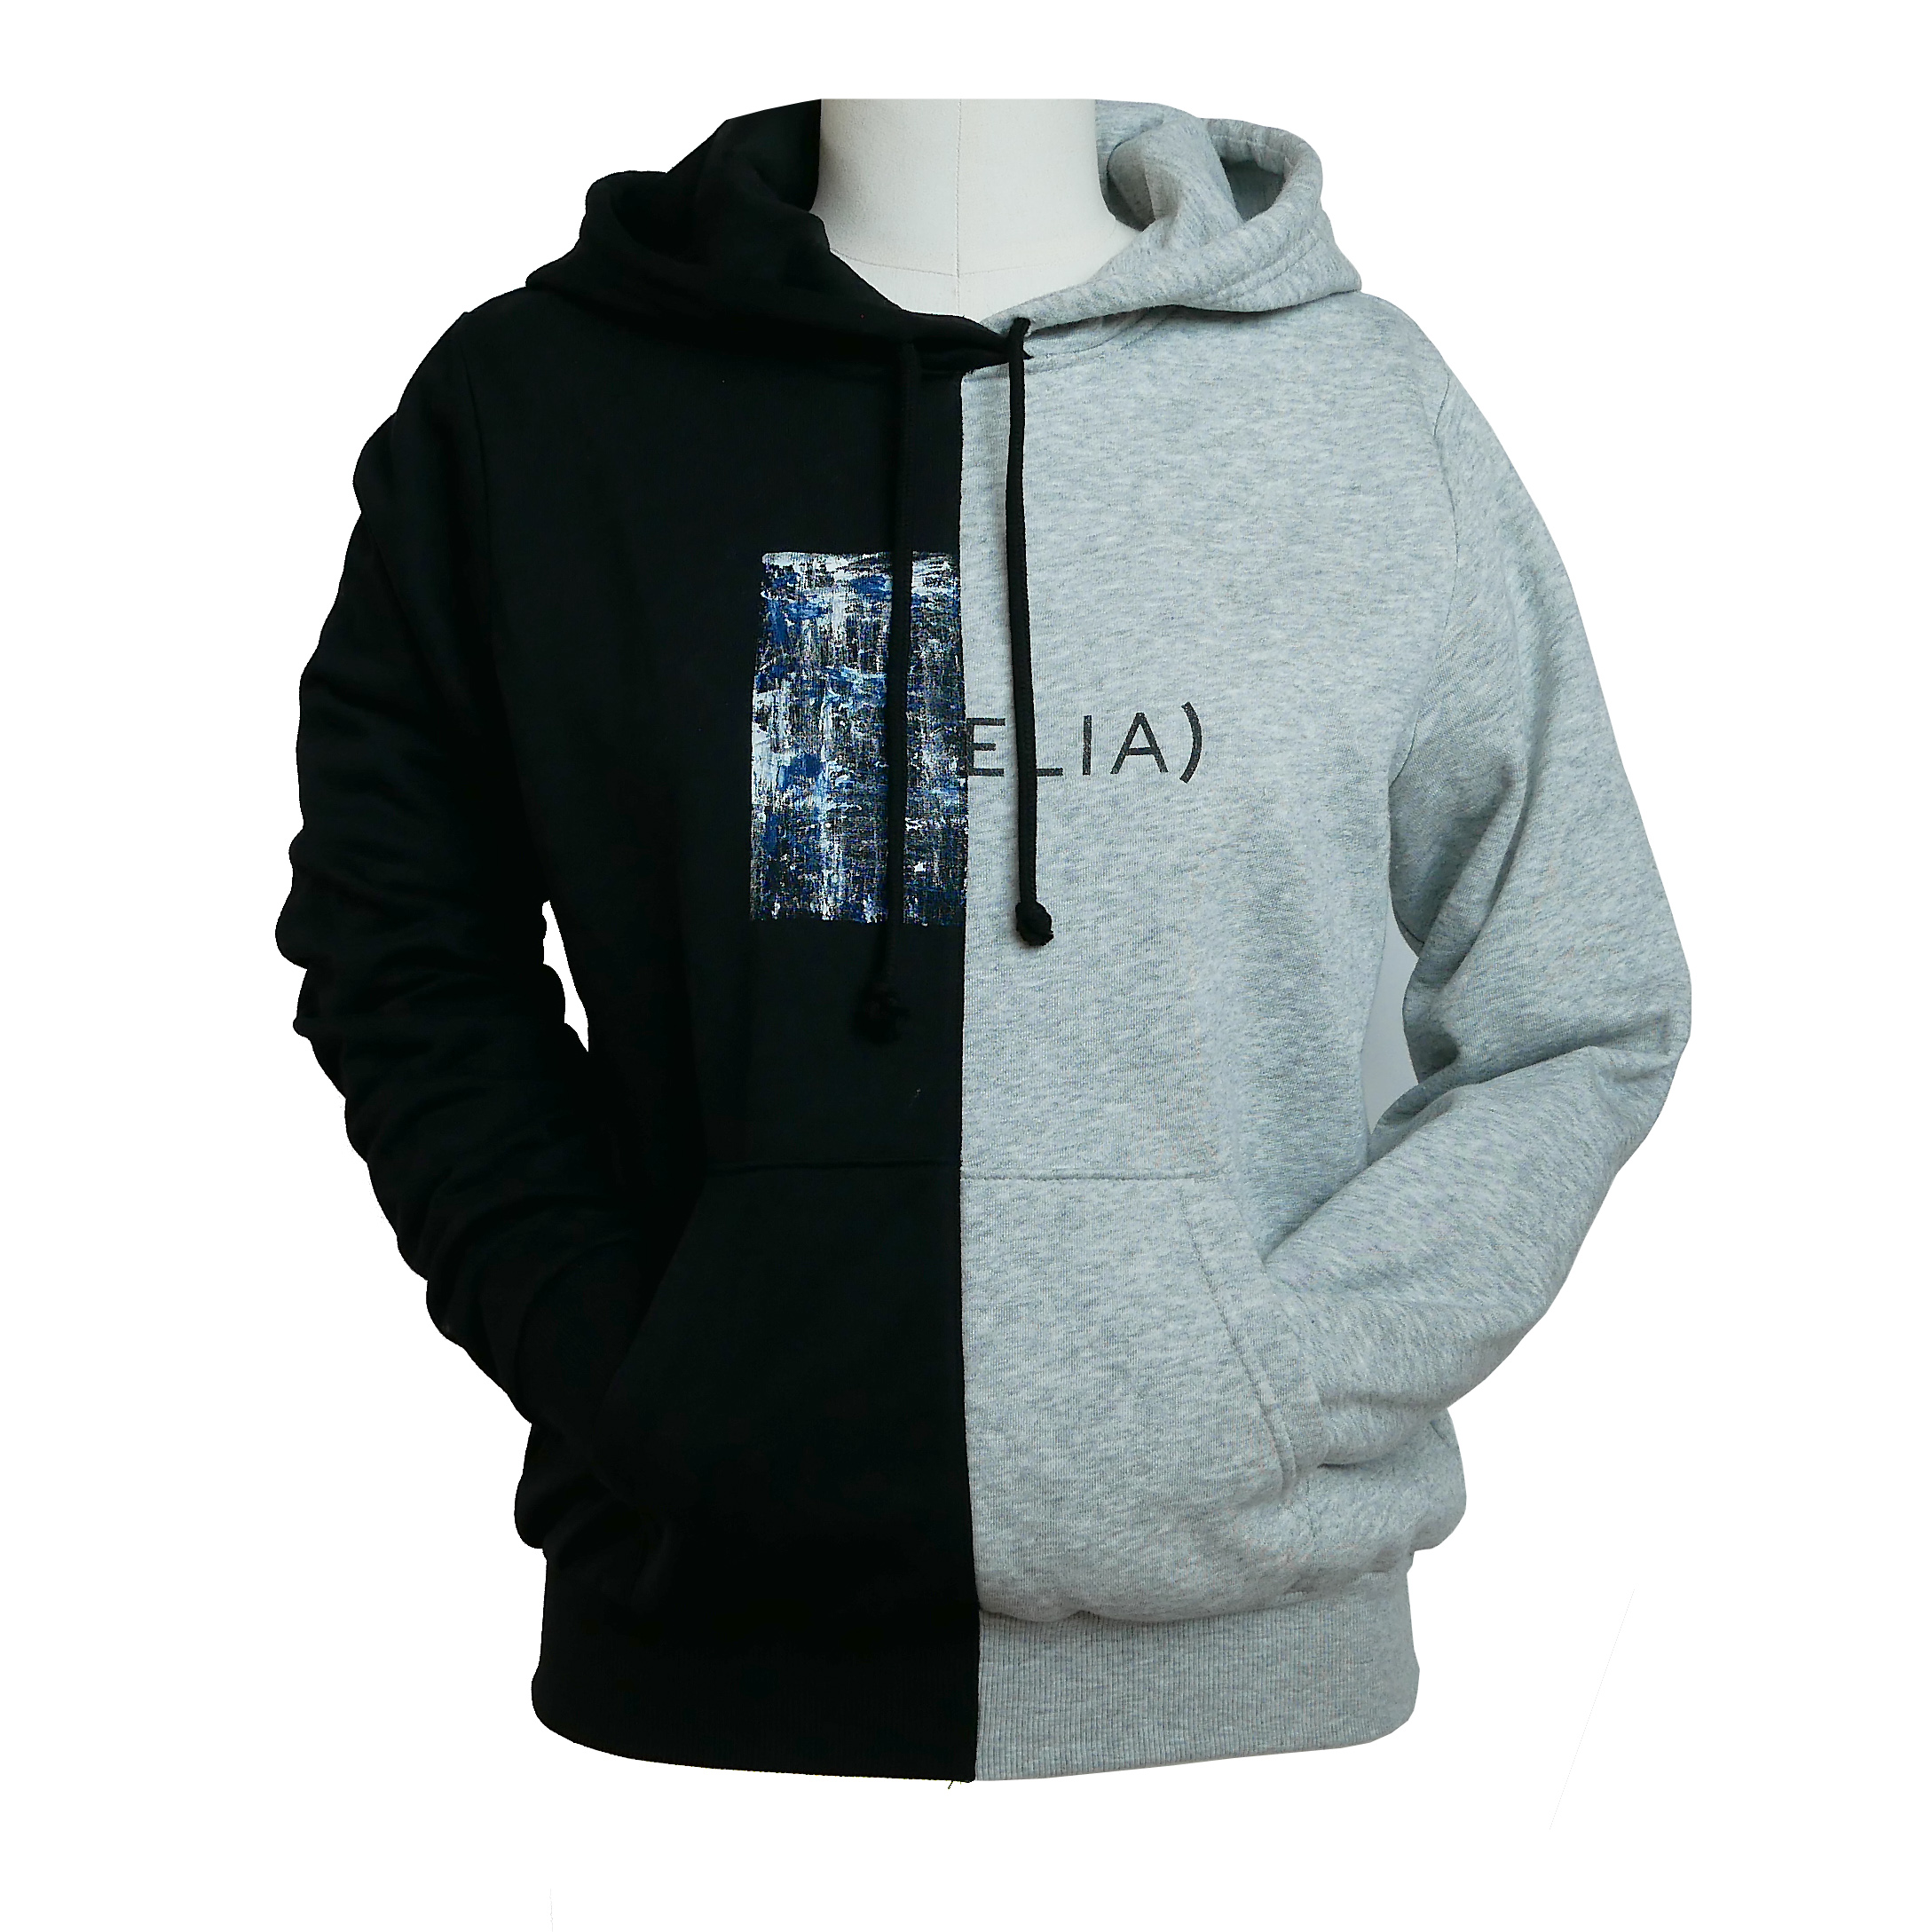 Hoodie right